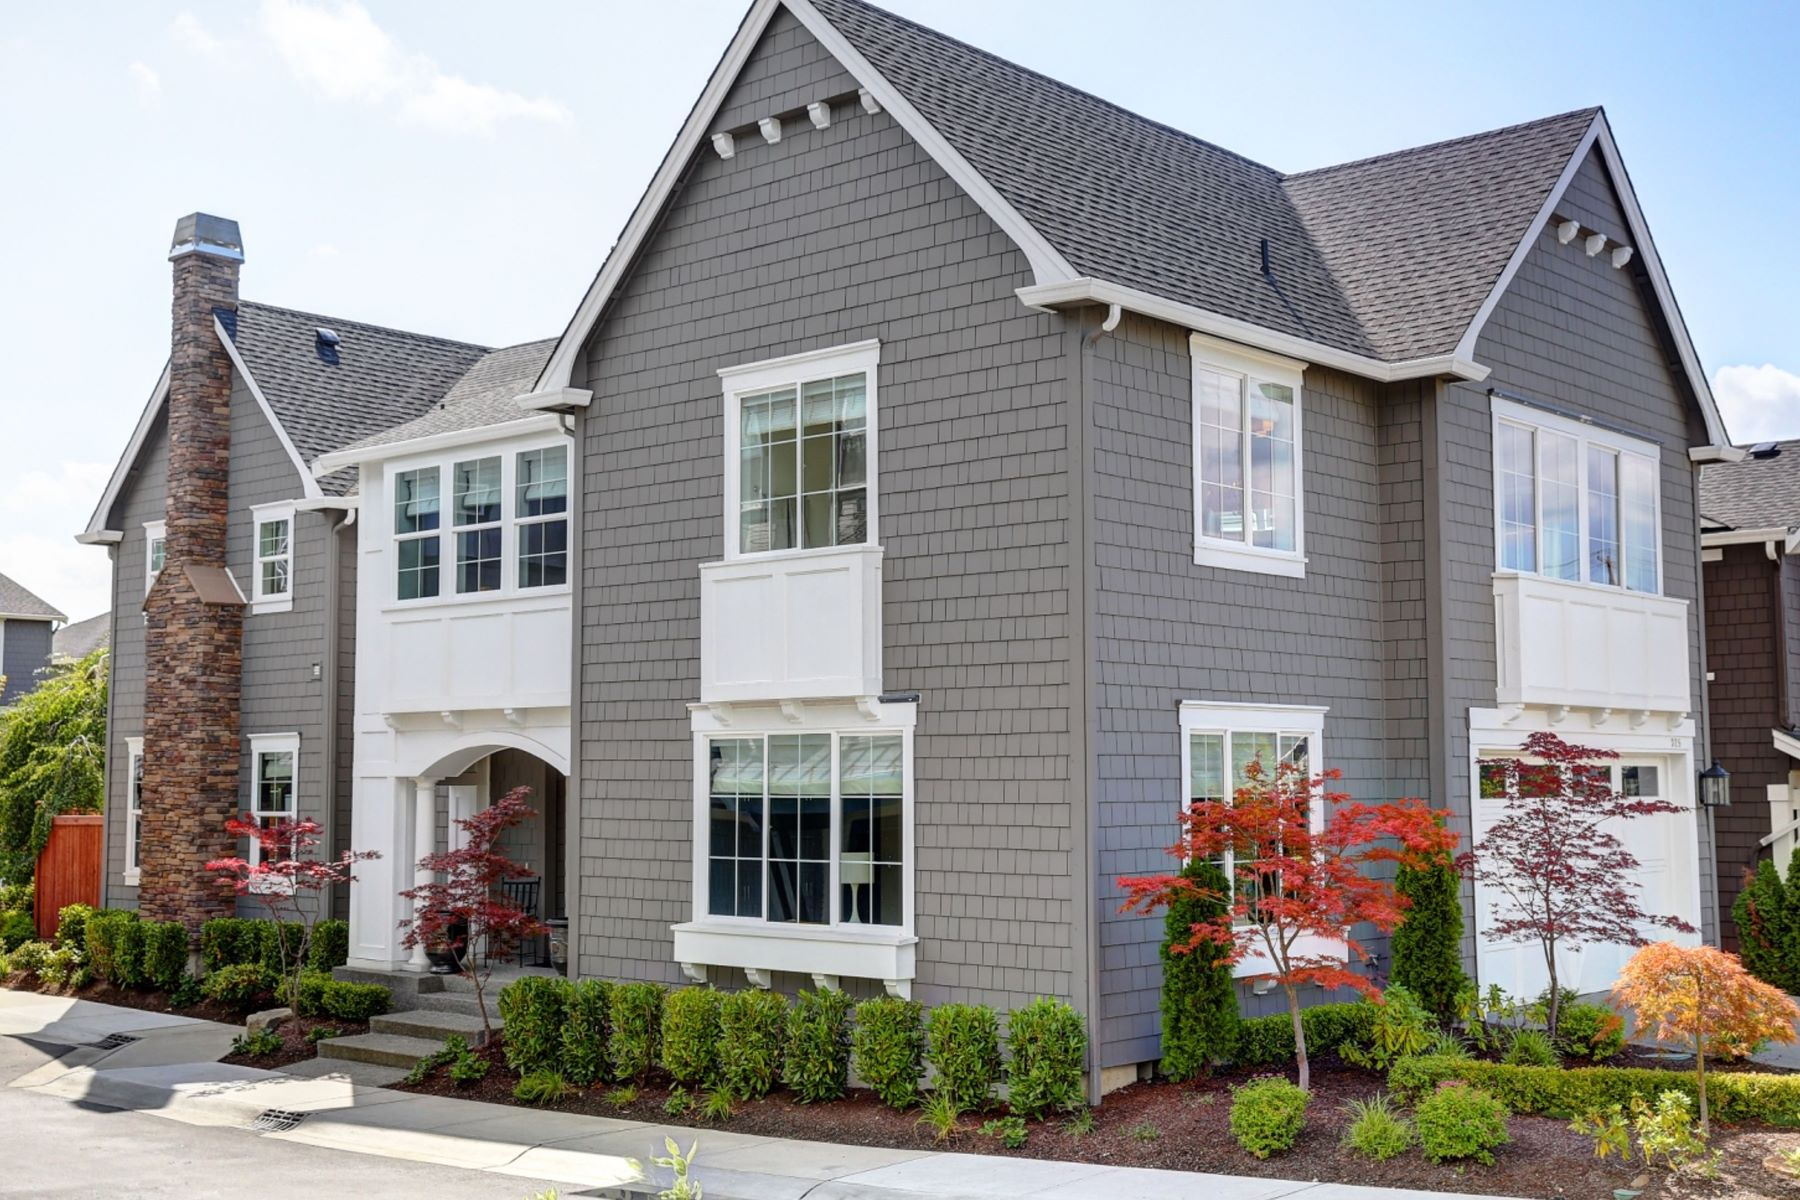 Condominiums for Sale at 325 2nd Ave S Unit #1, Kirkland, WA 98033 325 2nd Ave S Unit #1 Kirkland, Washington 98033 United States